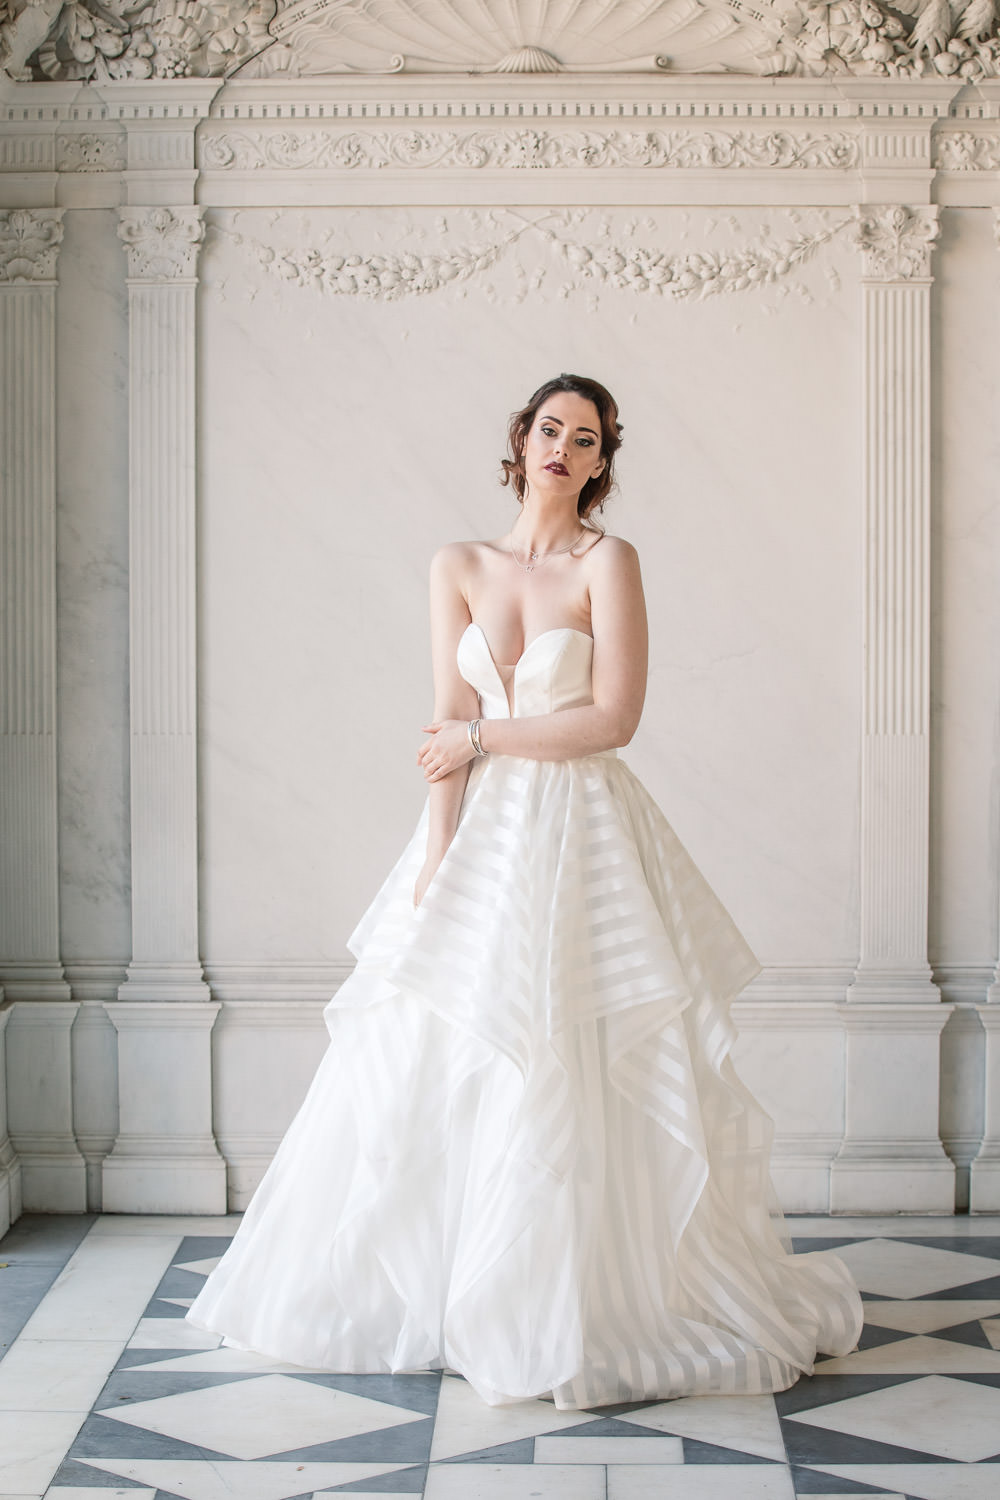 Dress Gown Bride Bridal Stripe Pockets Plunging Neckline Ruffle Layer Skirt Winter Luxe Wedding Ideas Becky Harley Photography